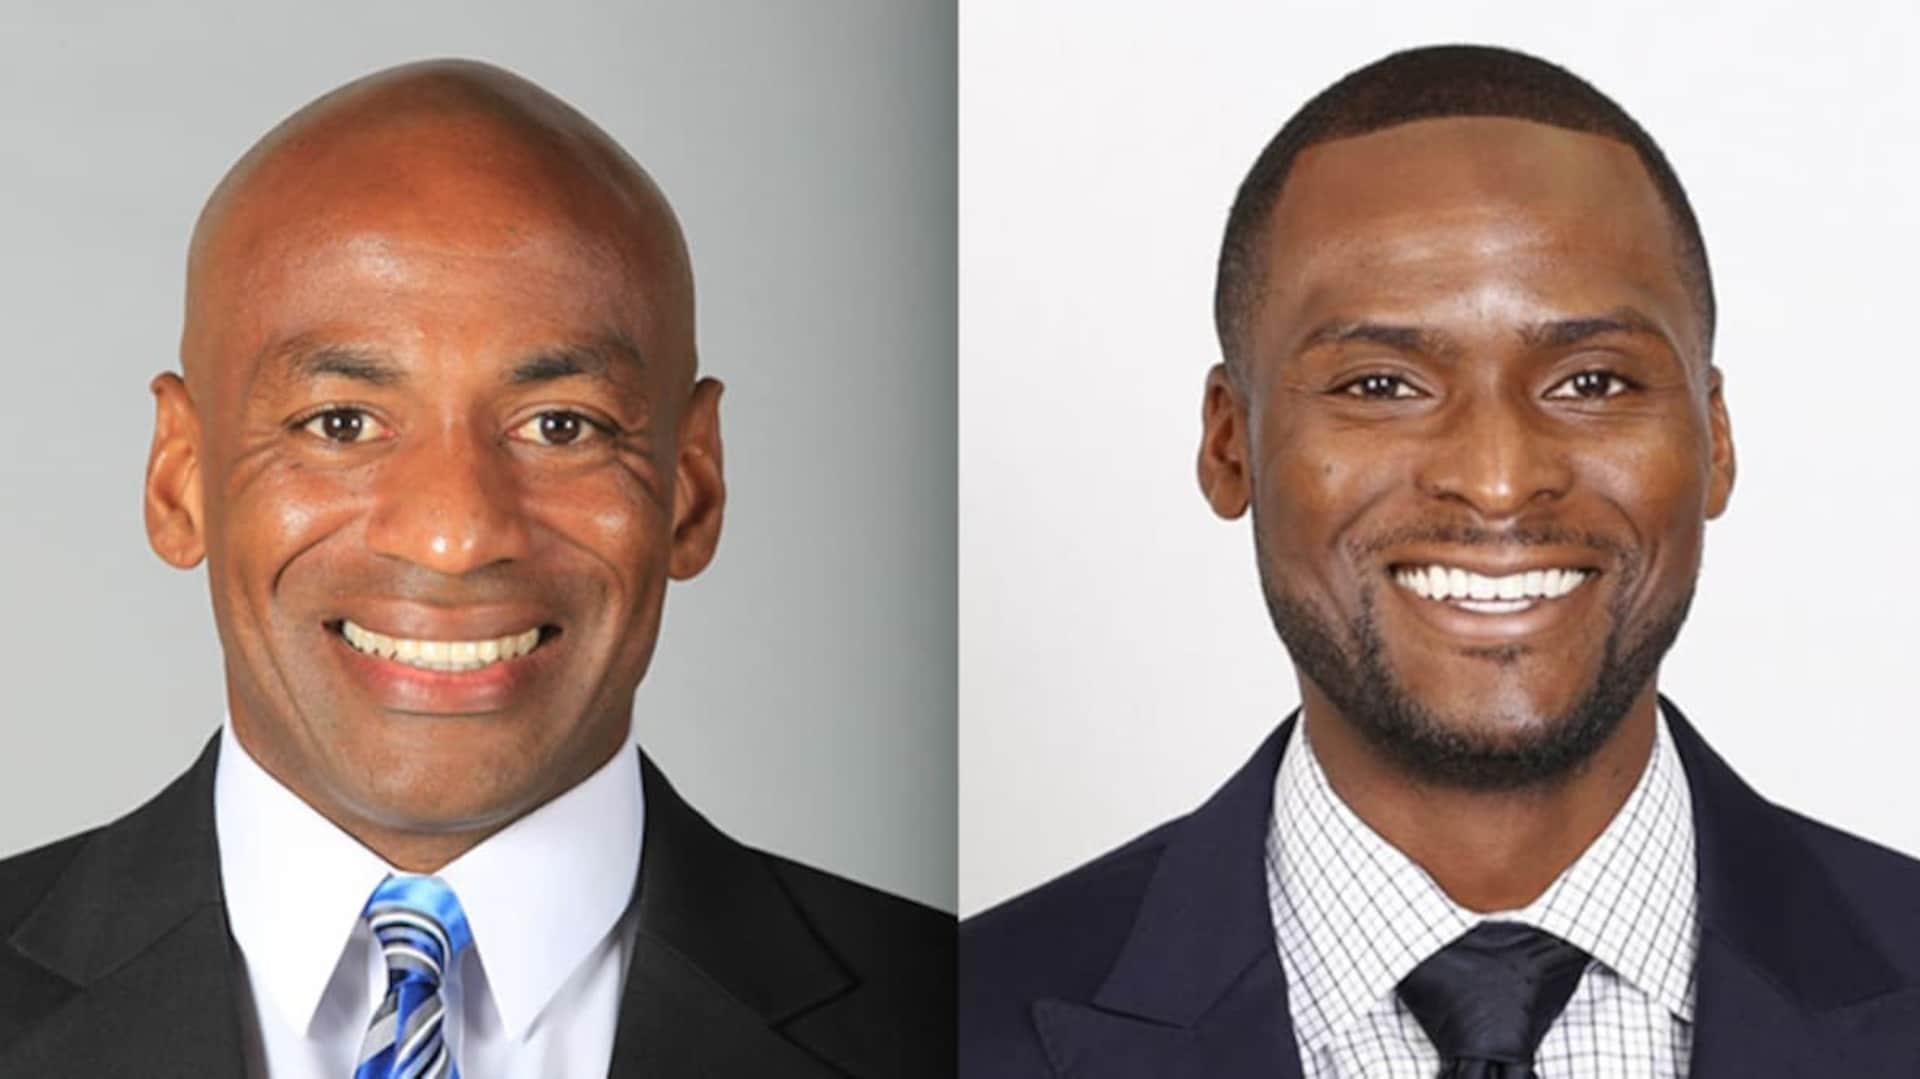 Jazz add Dell Demps, Keyon Dooling to coaching staff